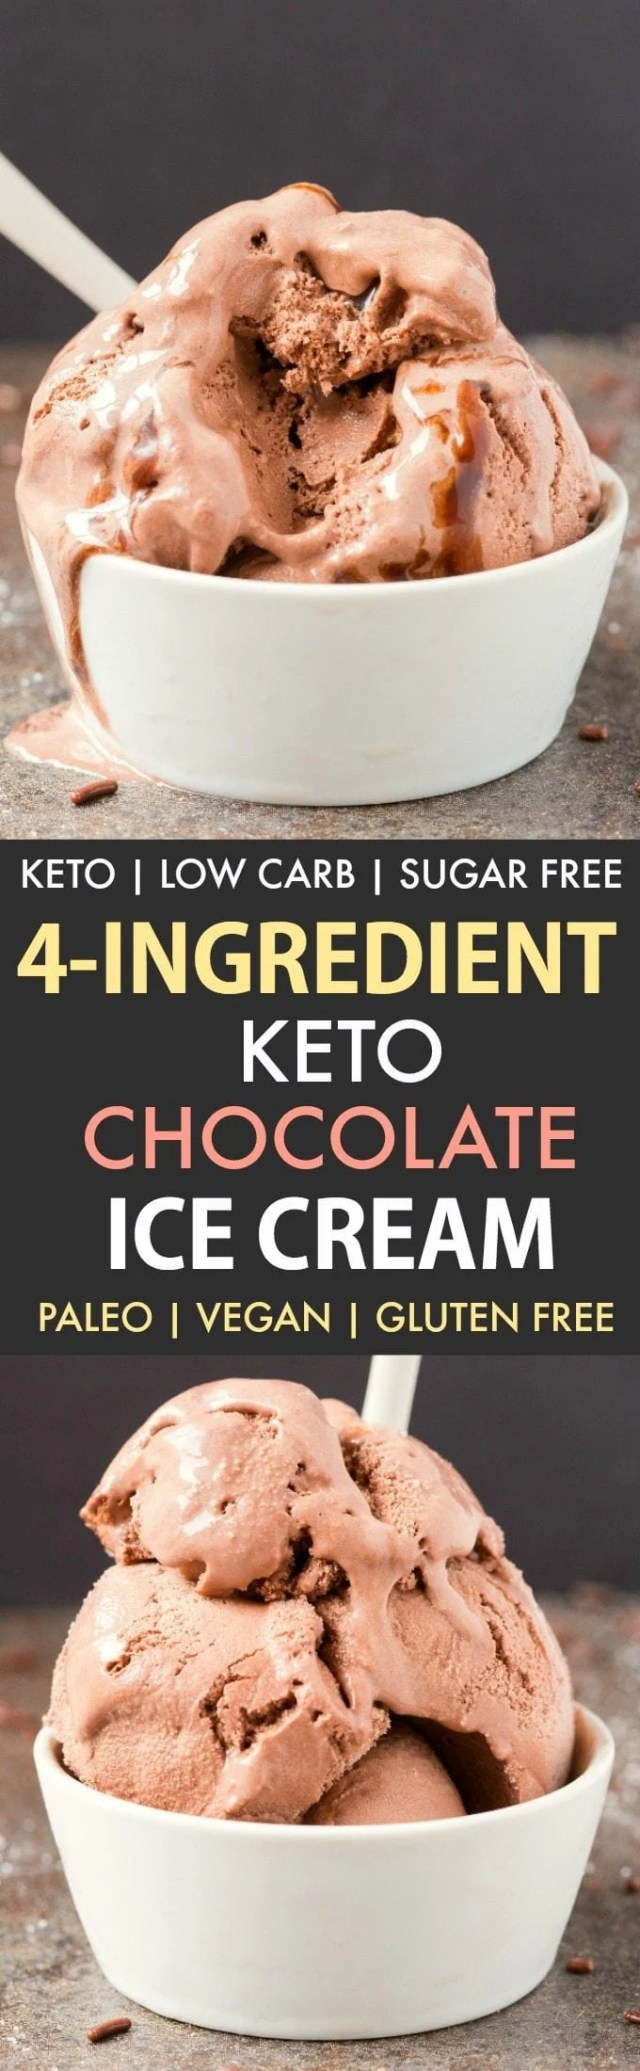 4-Ingredient Keto Chocolate Ice Cream in a collage